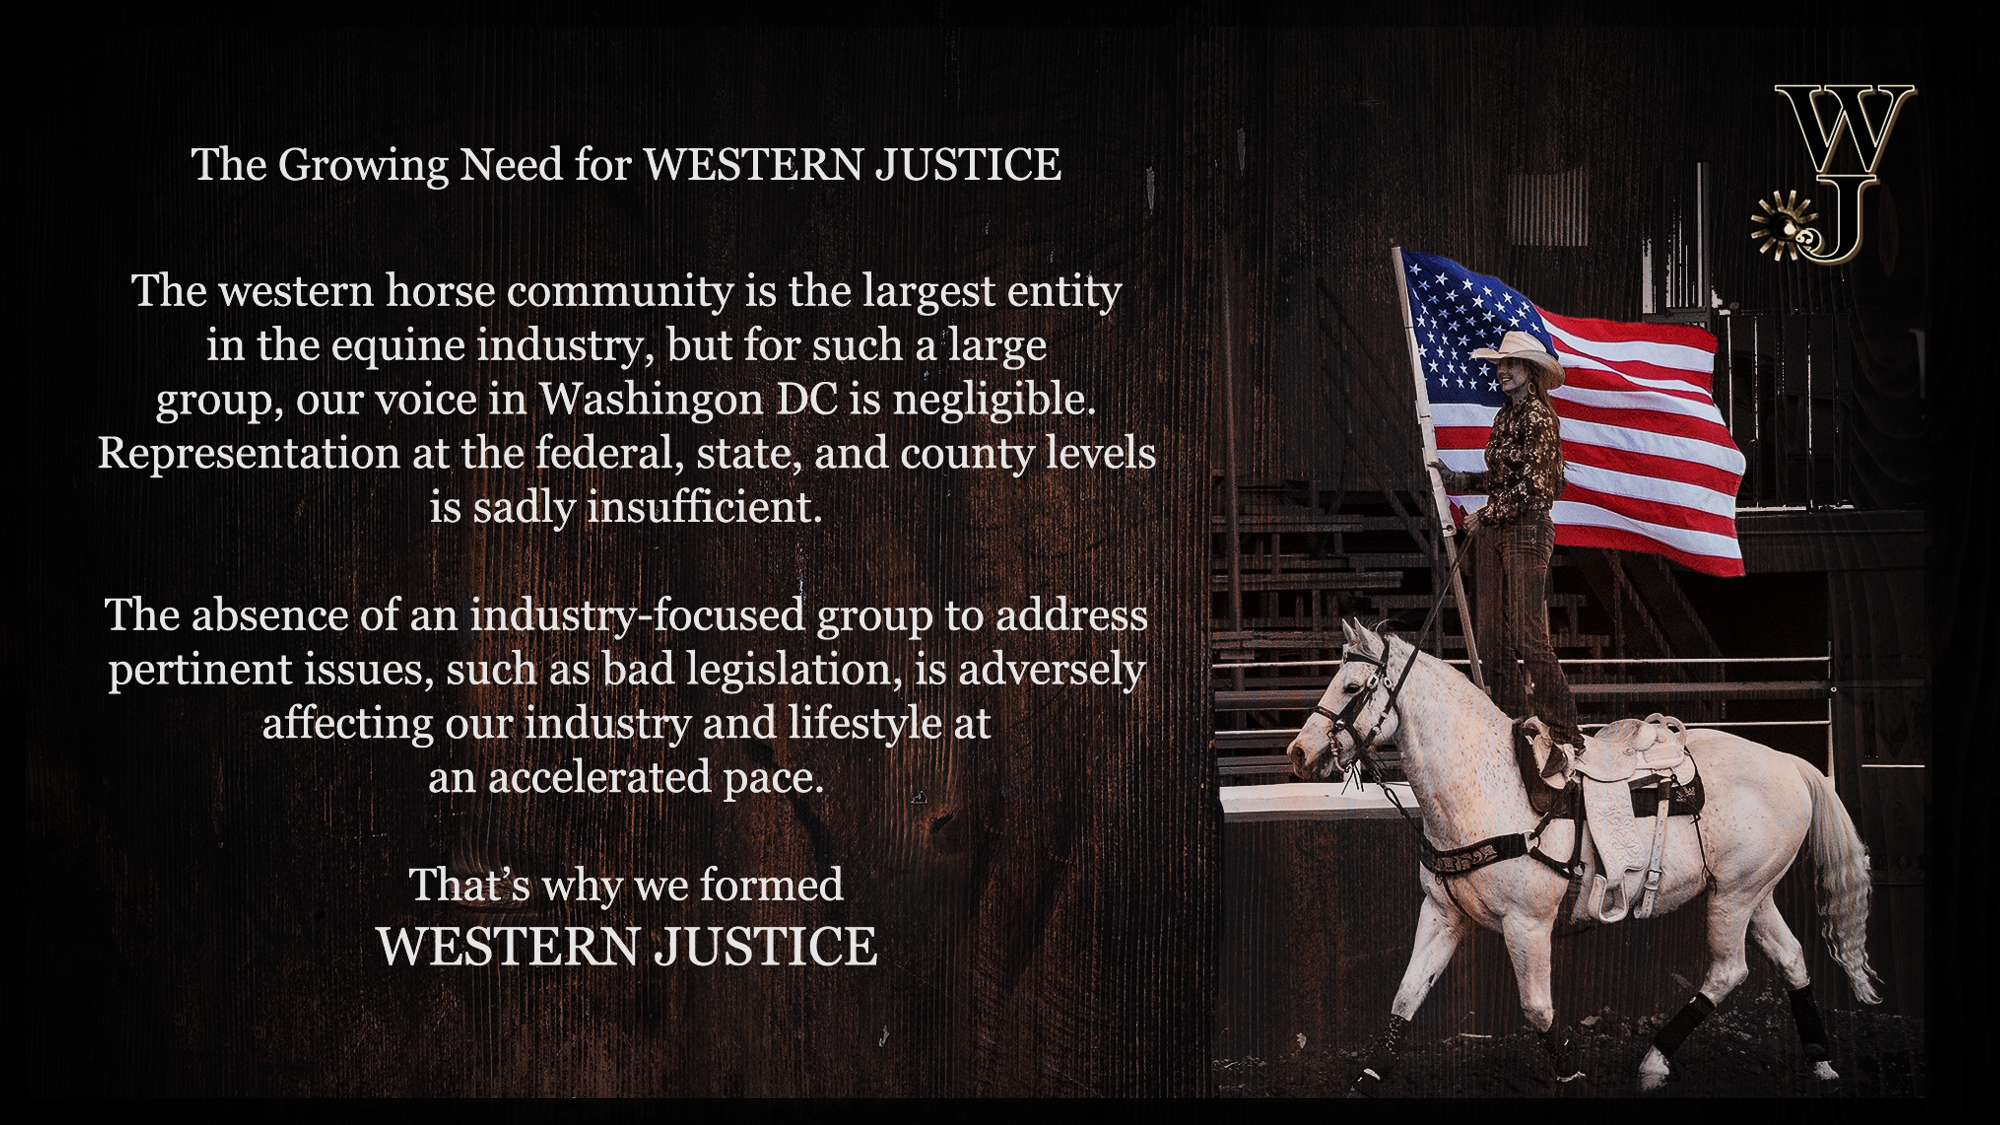 The Need For Western Justice